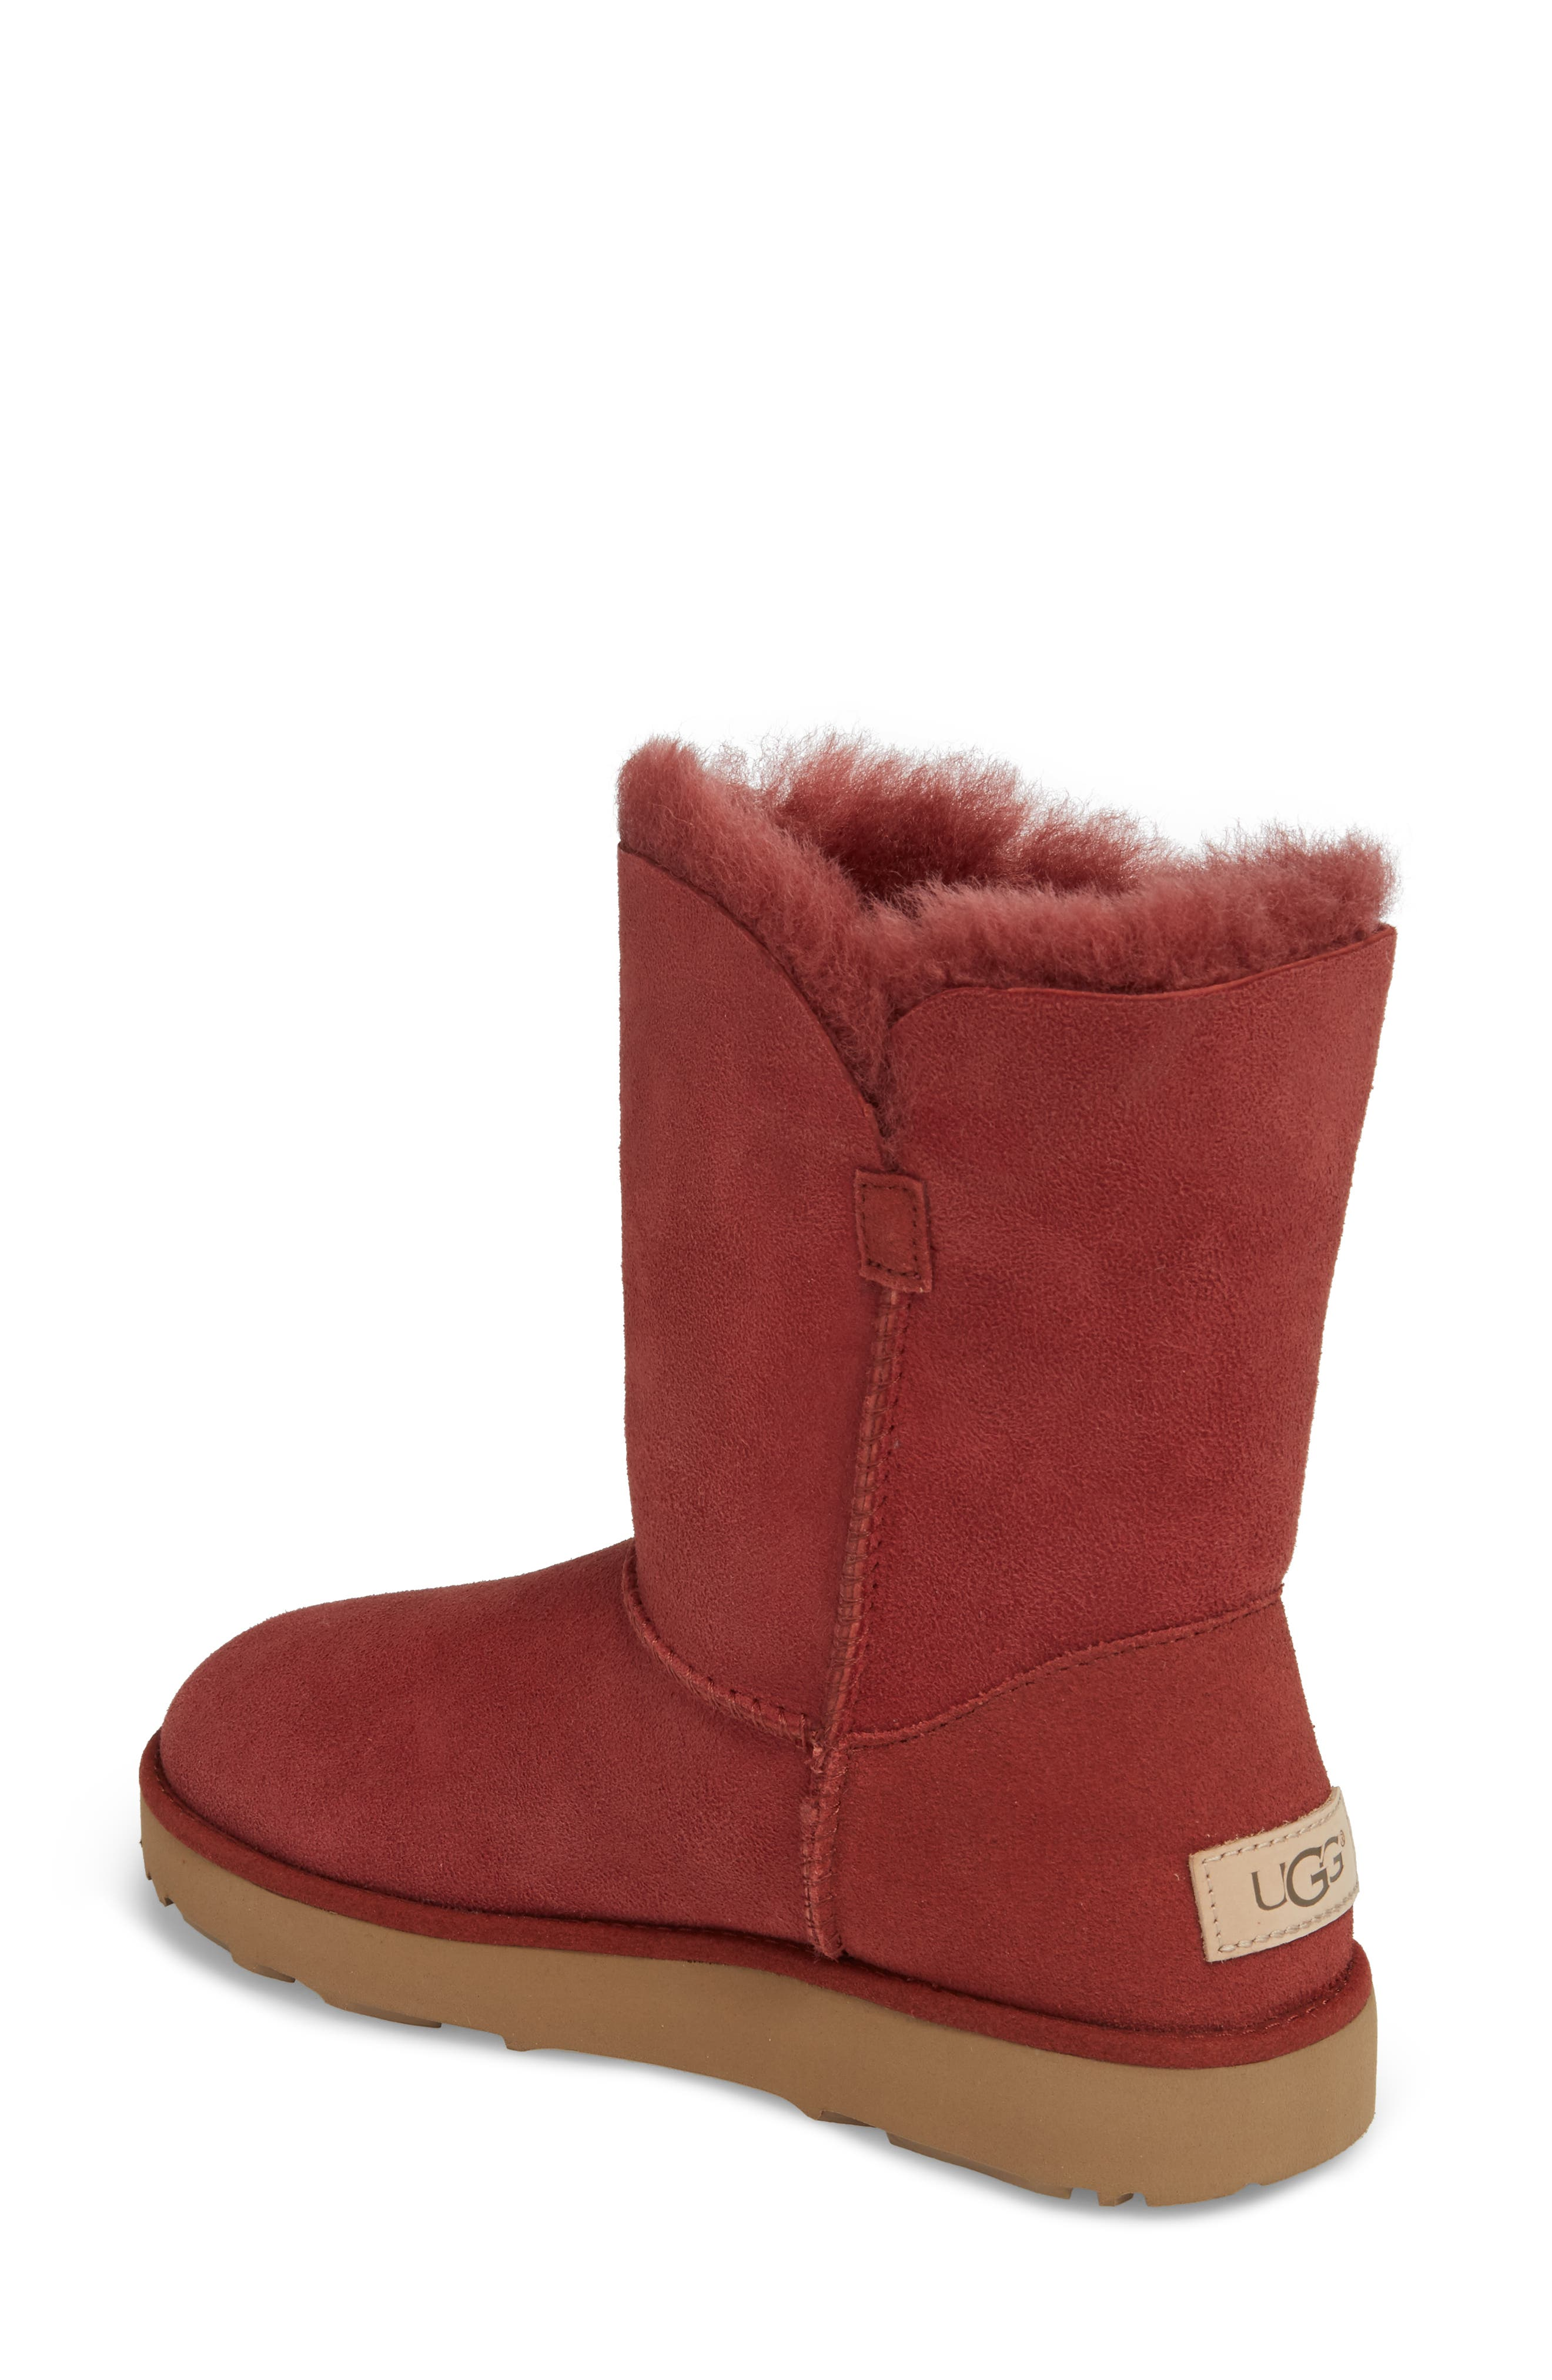 Classic Cuff Short Boot,                             Alternate thumbnail 2, color,                             Red Clay Suede